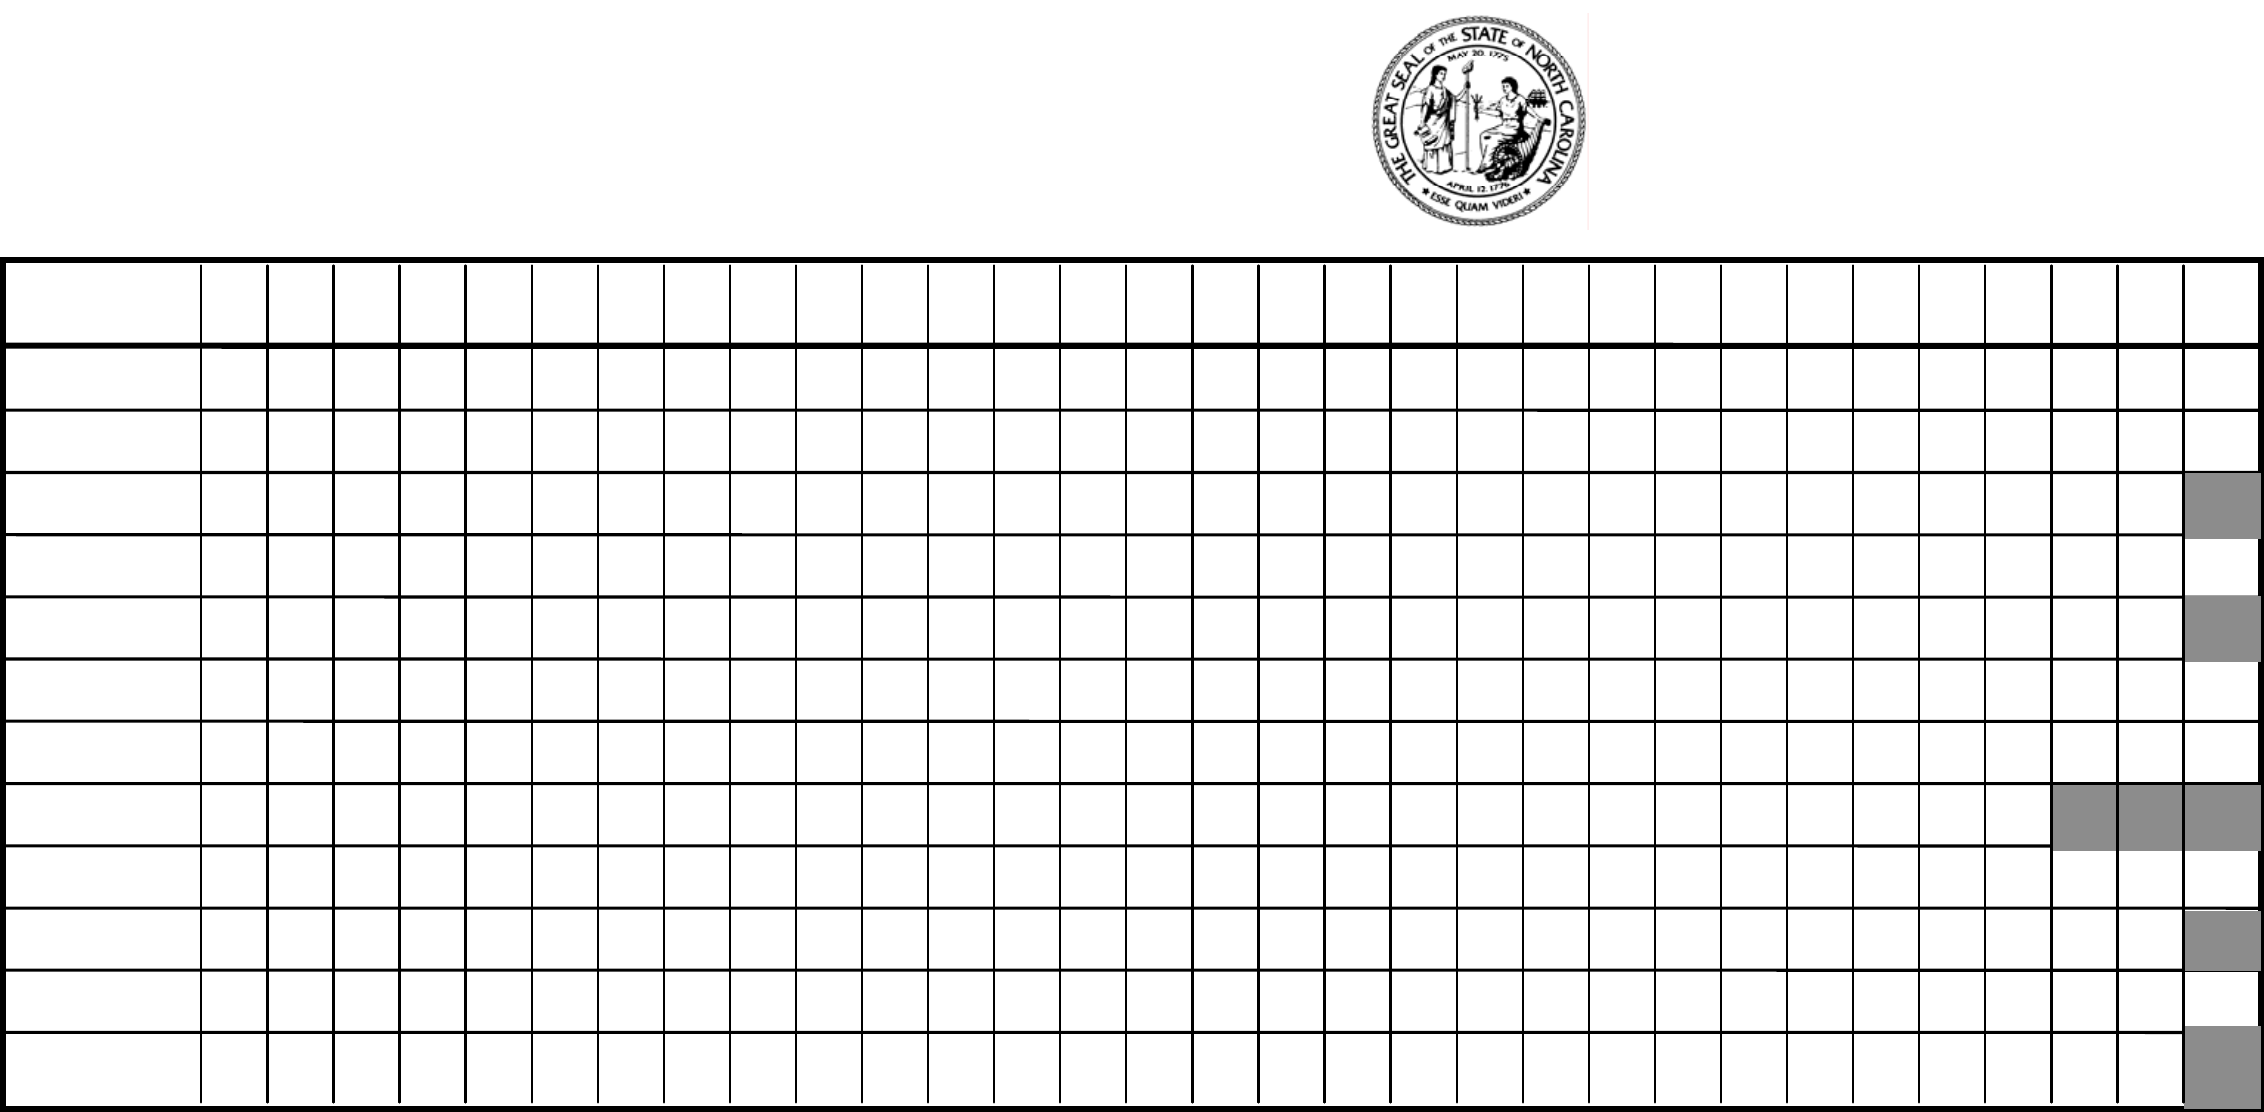 home school attendance record sheet free download